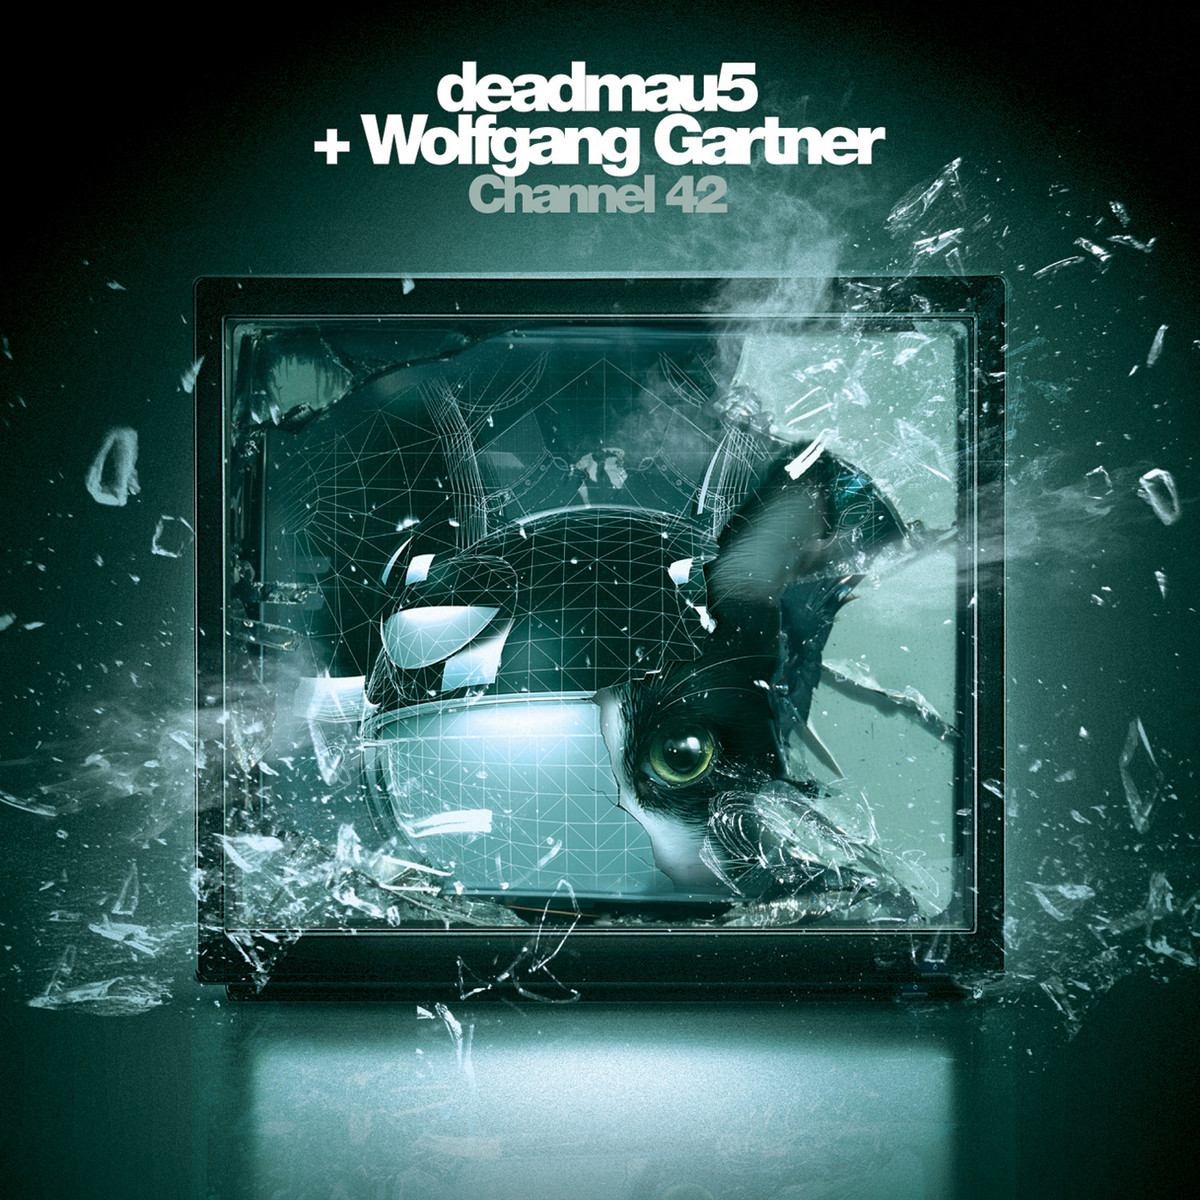 deadmau5-+-Wolfgang-Gartner-Channel-42-2013-1200x1200